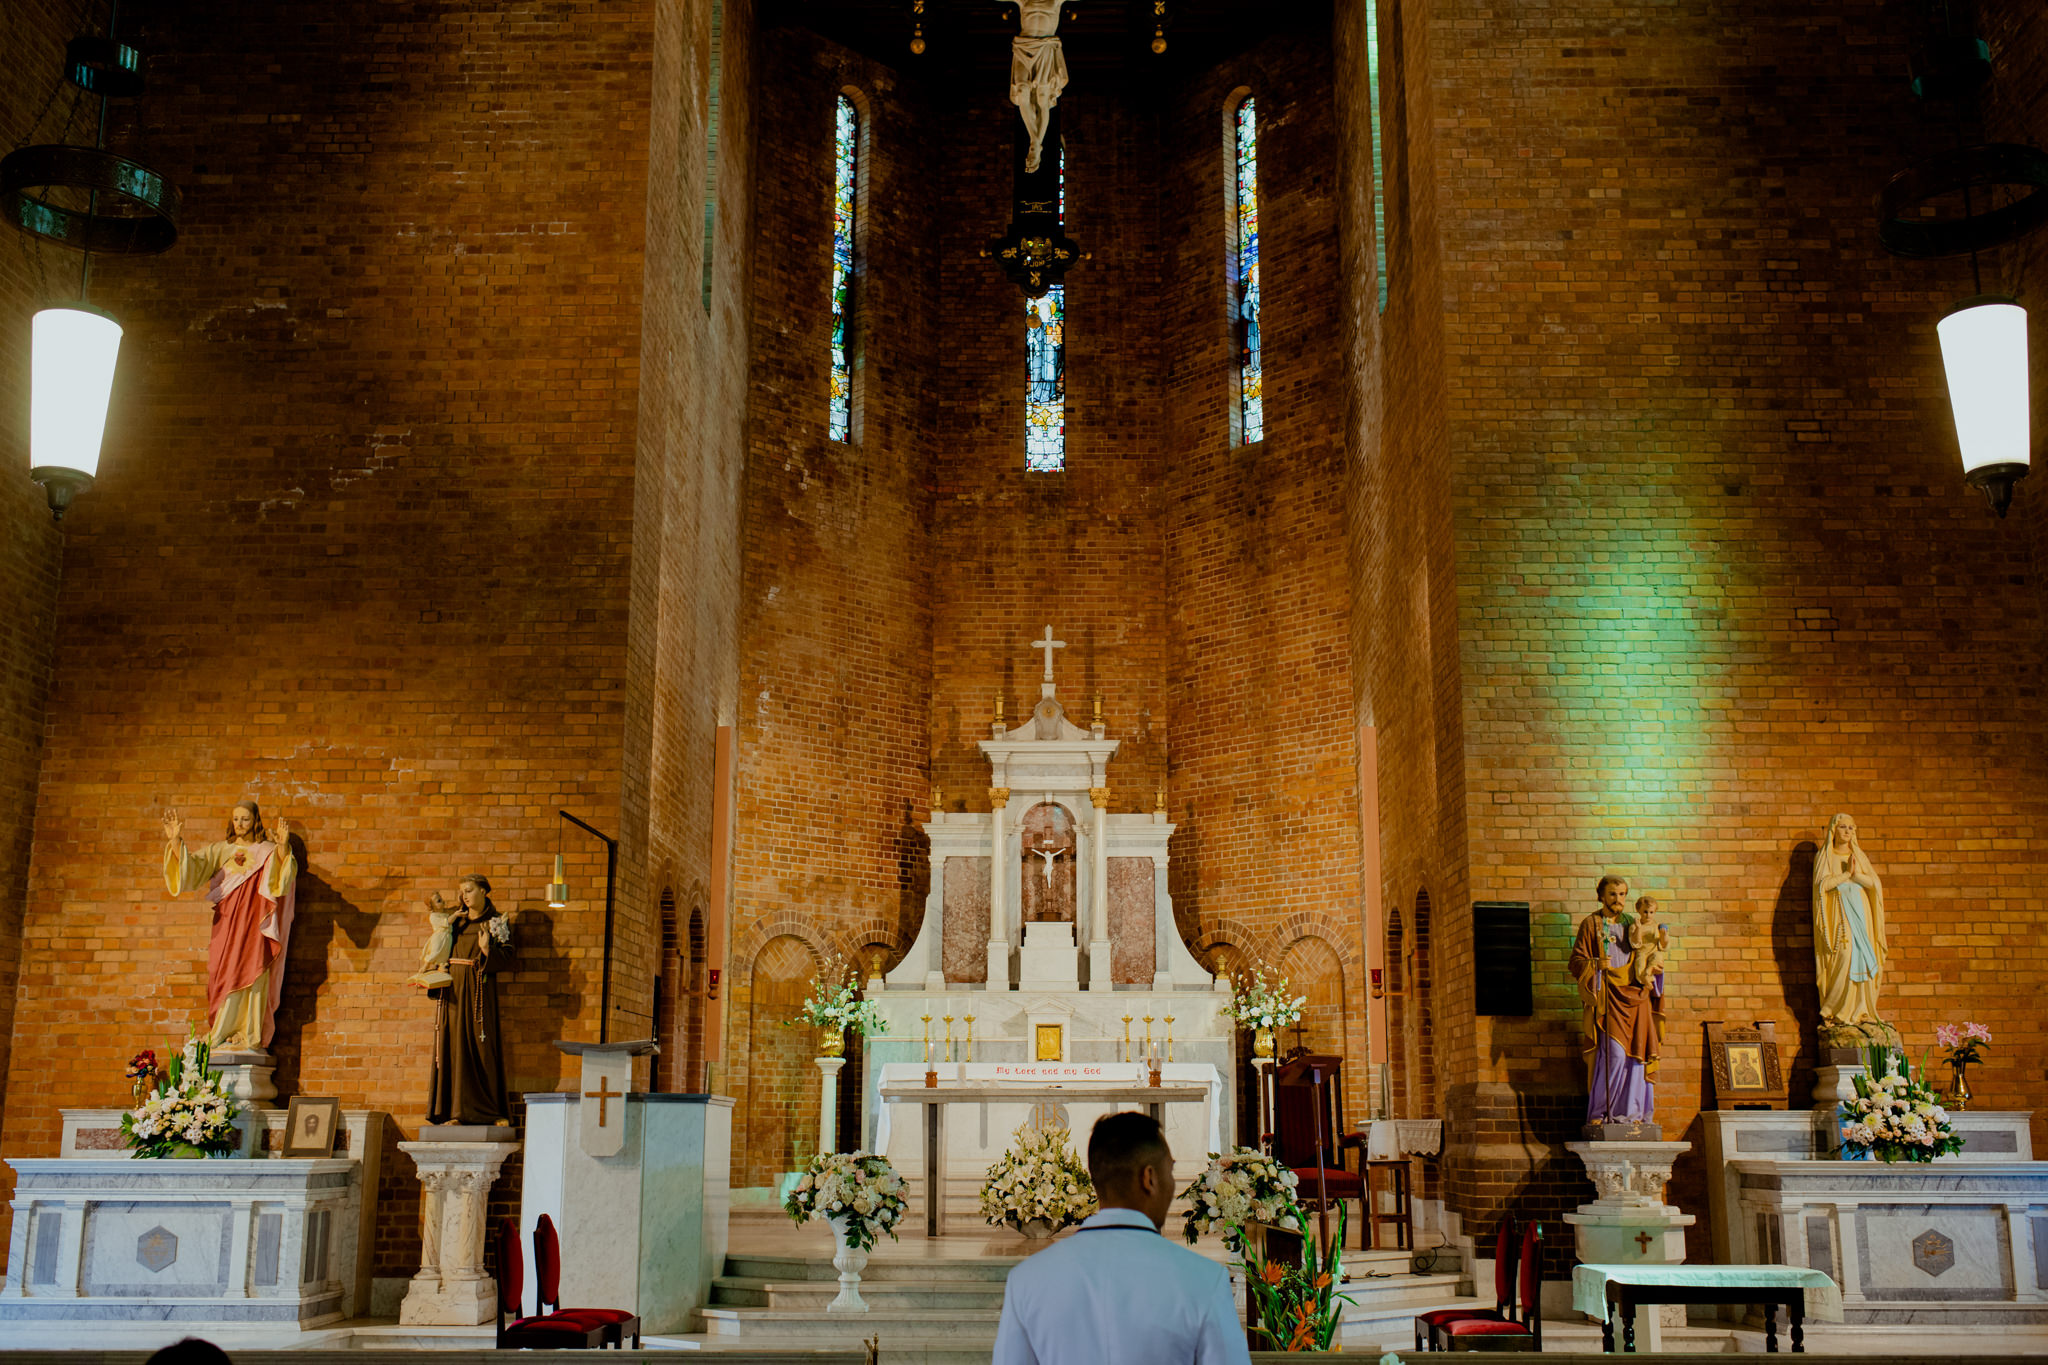 The interior of a tall and large brick Catholic church